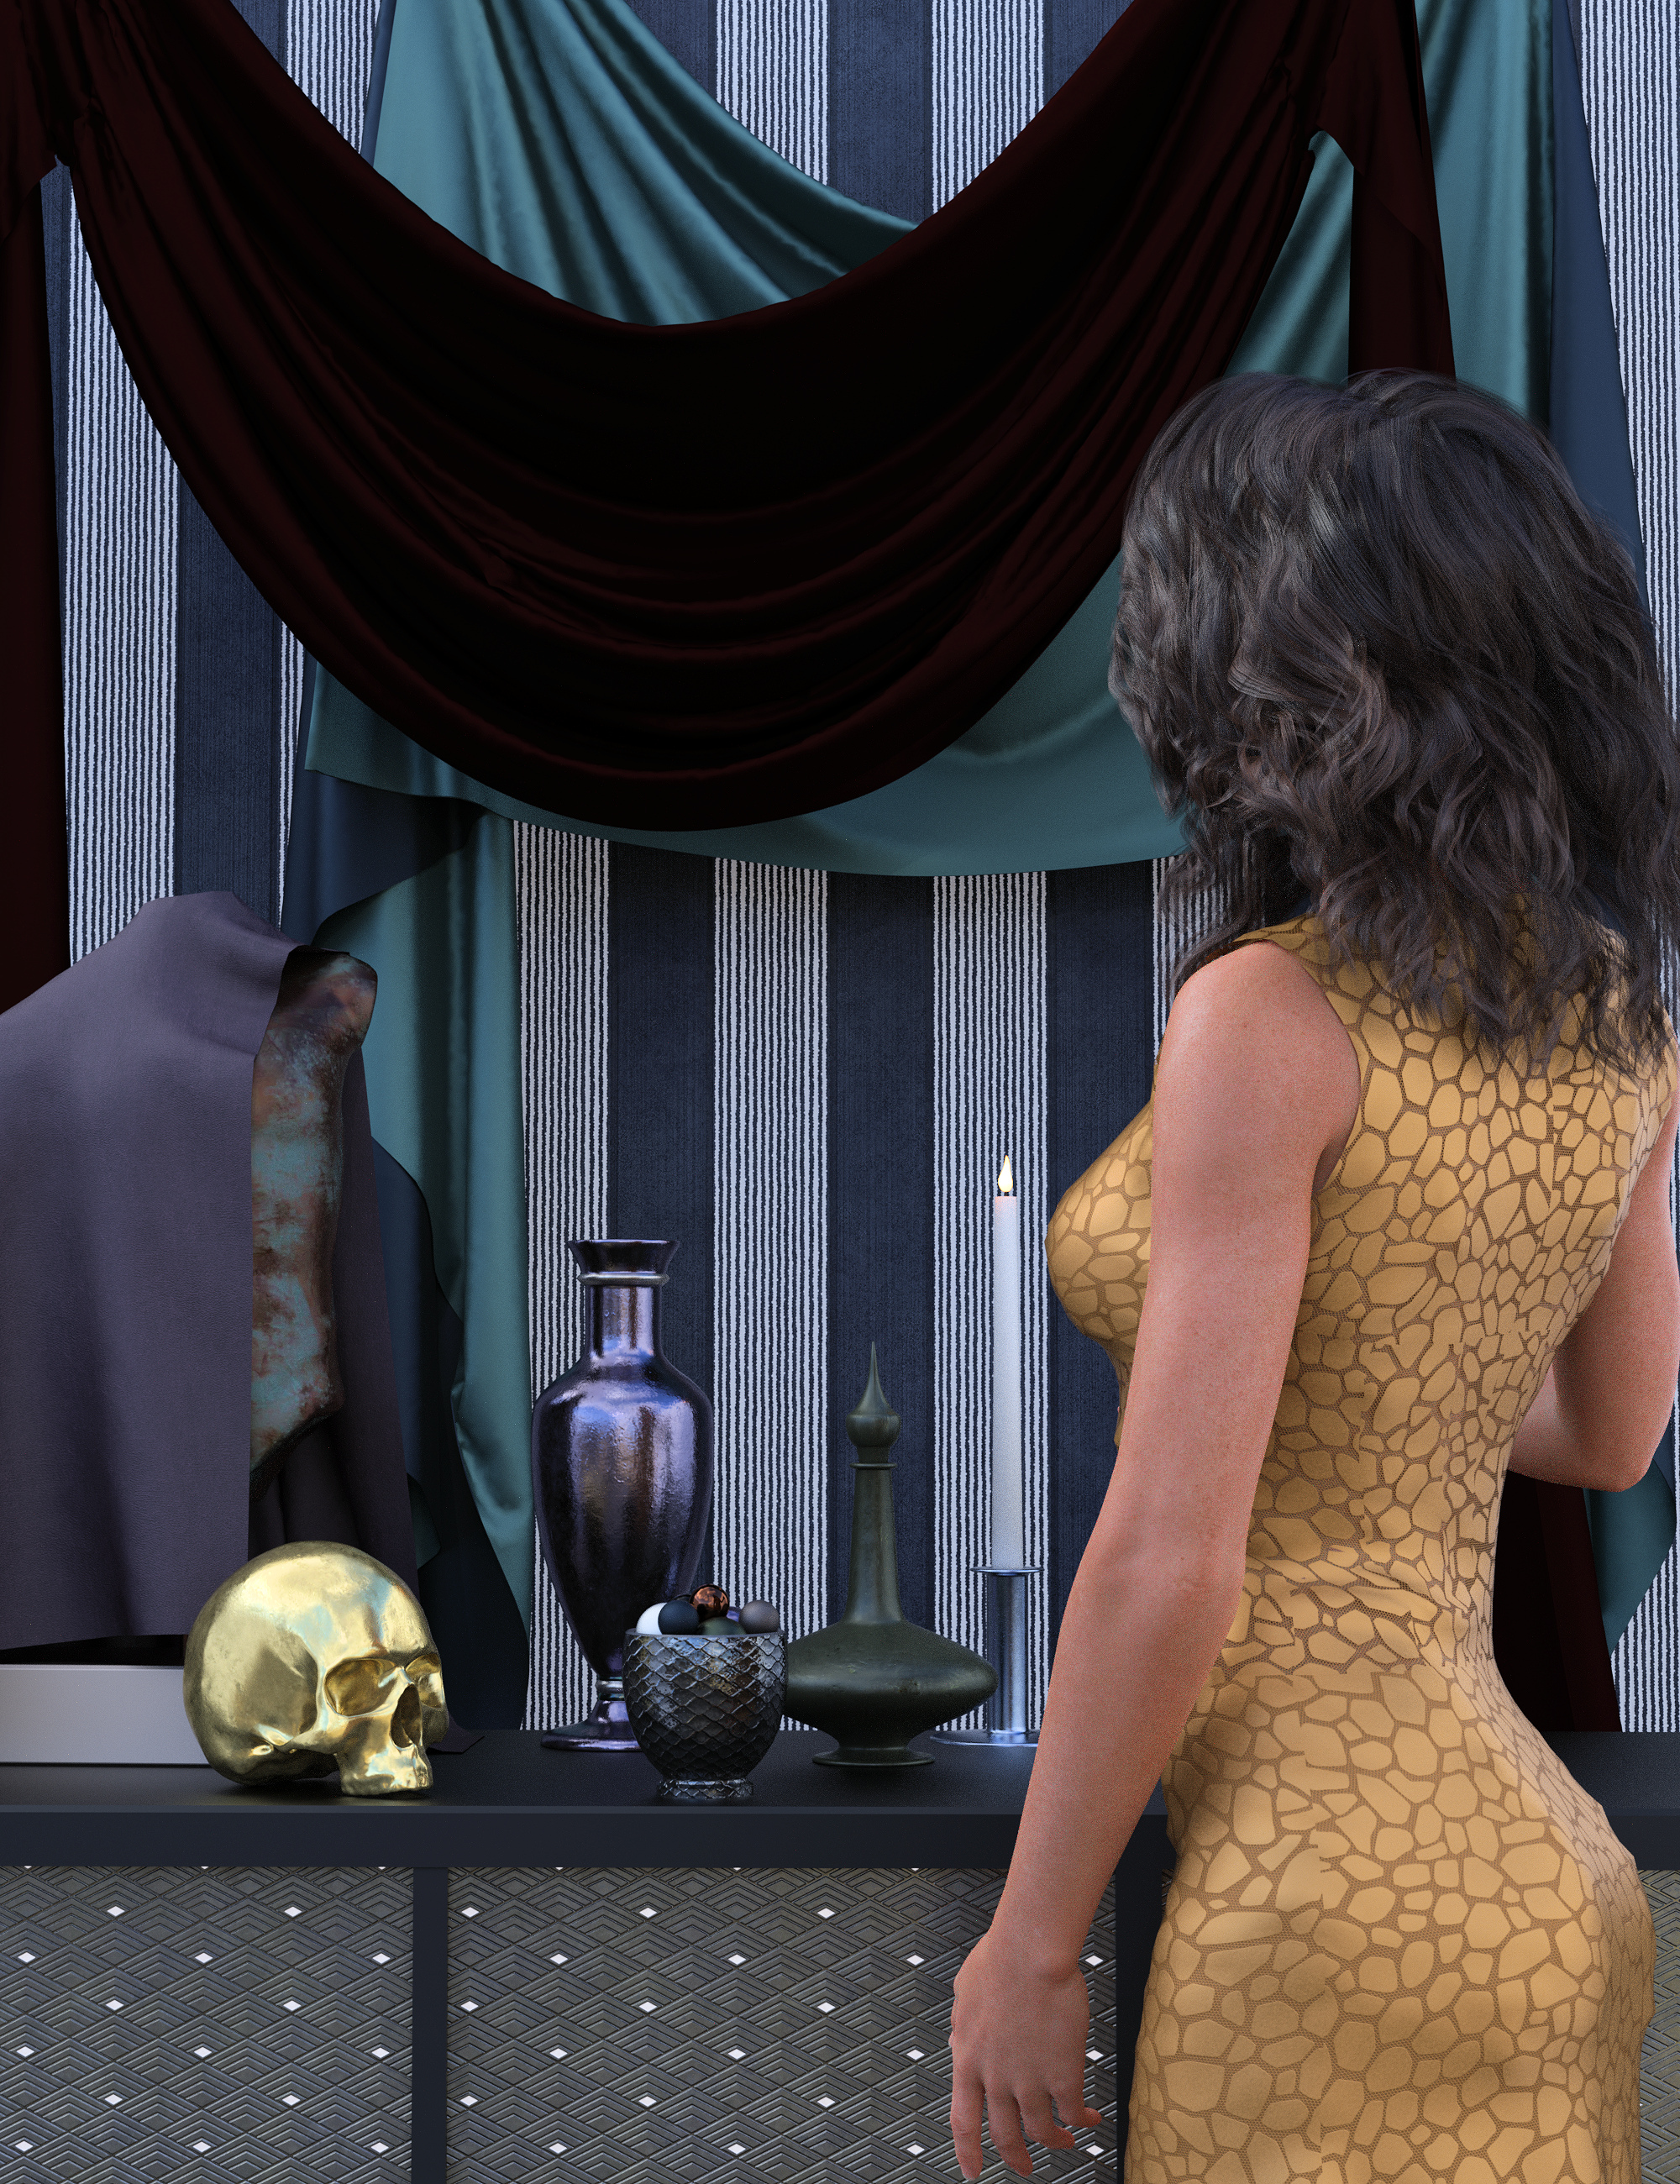 Dark Worlds Fabrics and Metals Bundle by: Khory, 3D Models by Daz 3D